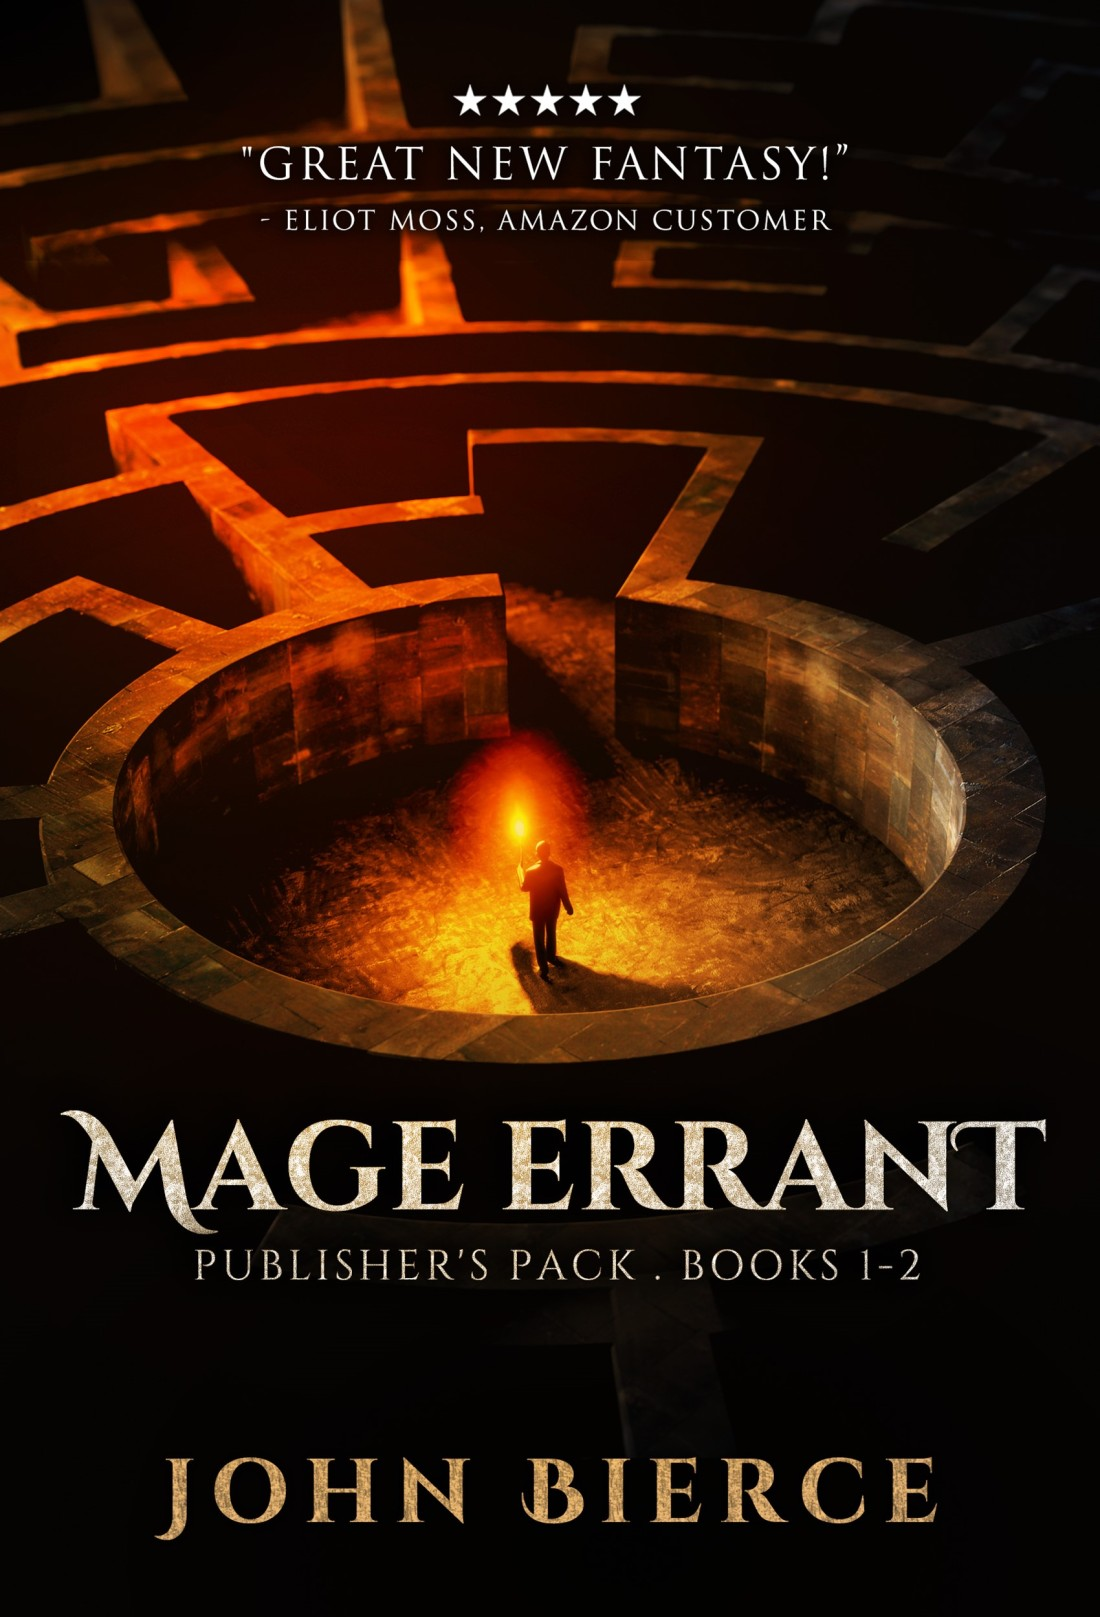 Publisher's Pack Cover.jpg